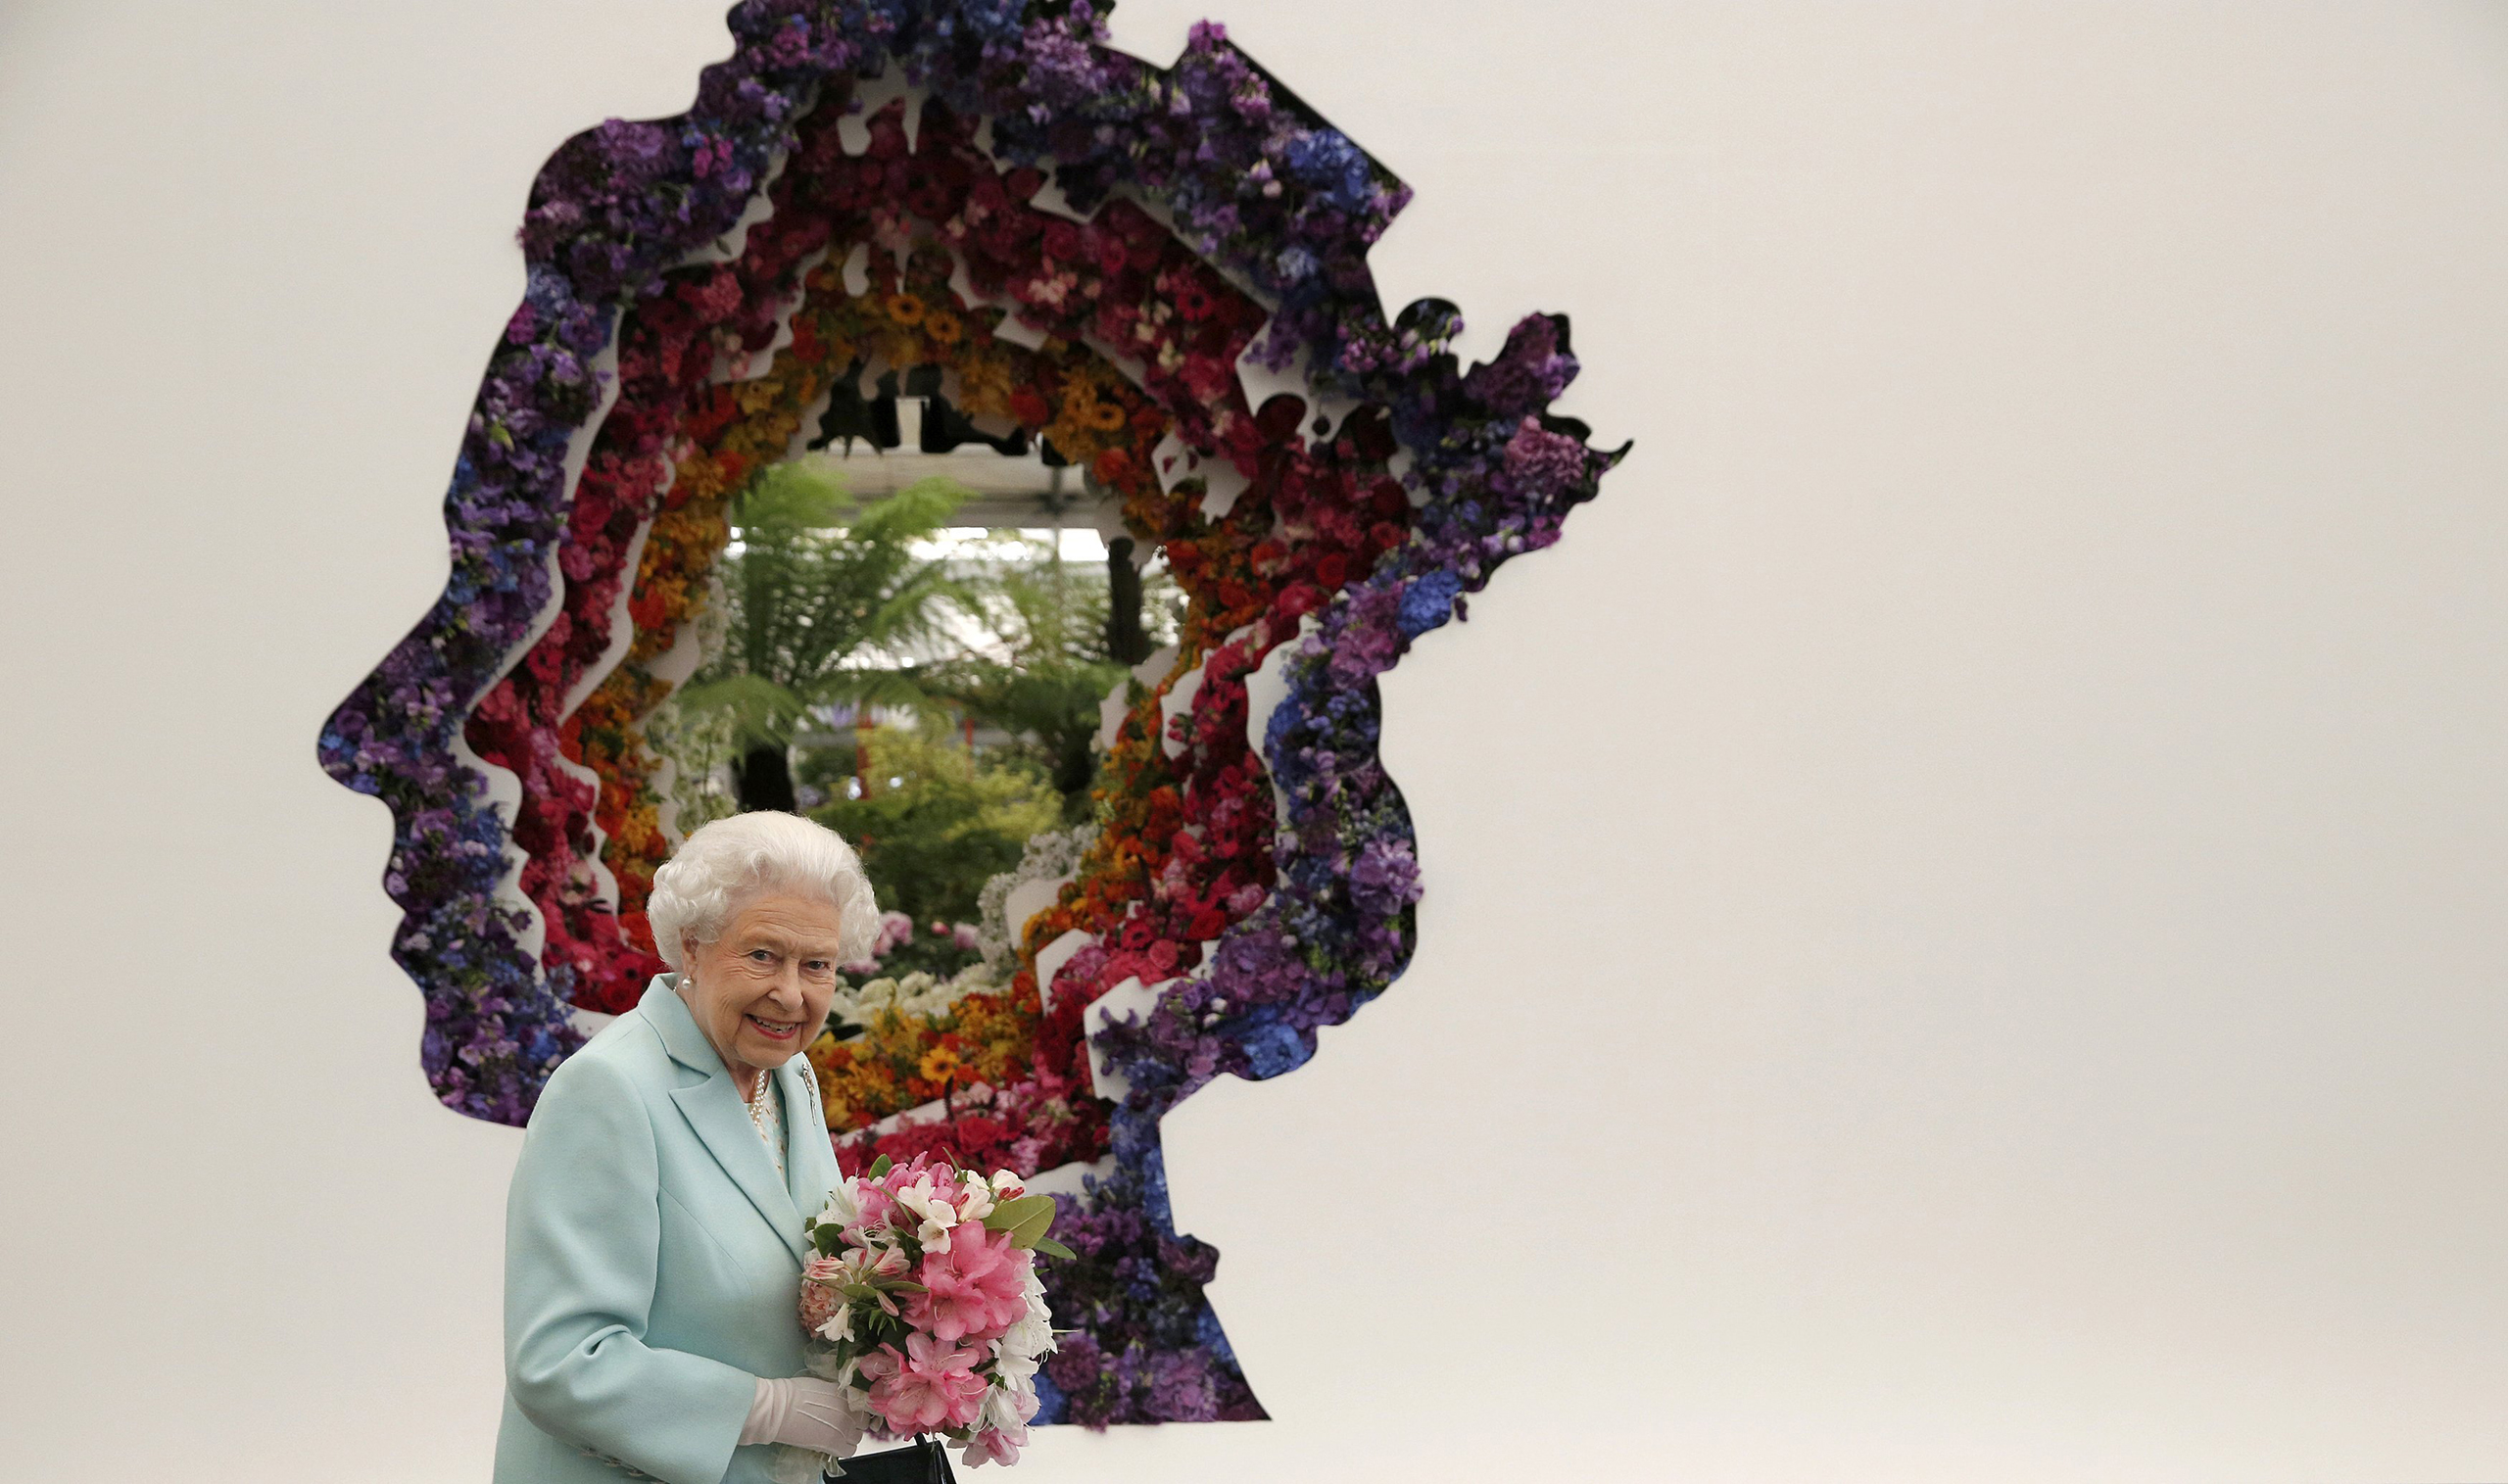 Queen Elizabeth II stands in front of a floral exhibit by the New Covent Garden Flower Market, which features an image of the Queen at the Chelsea Flower Show in London, May 23, 2016.